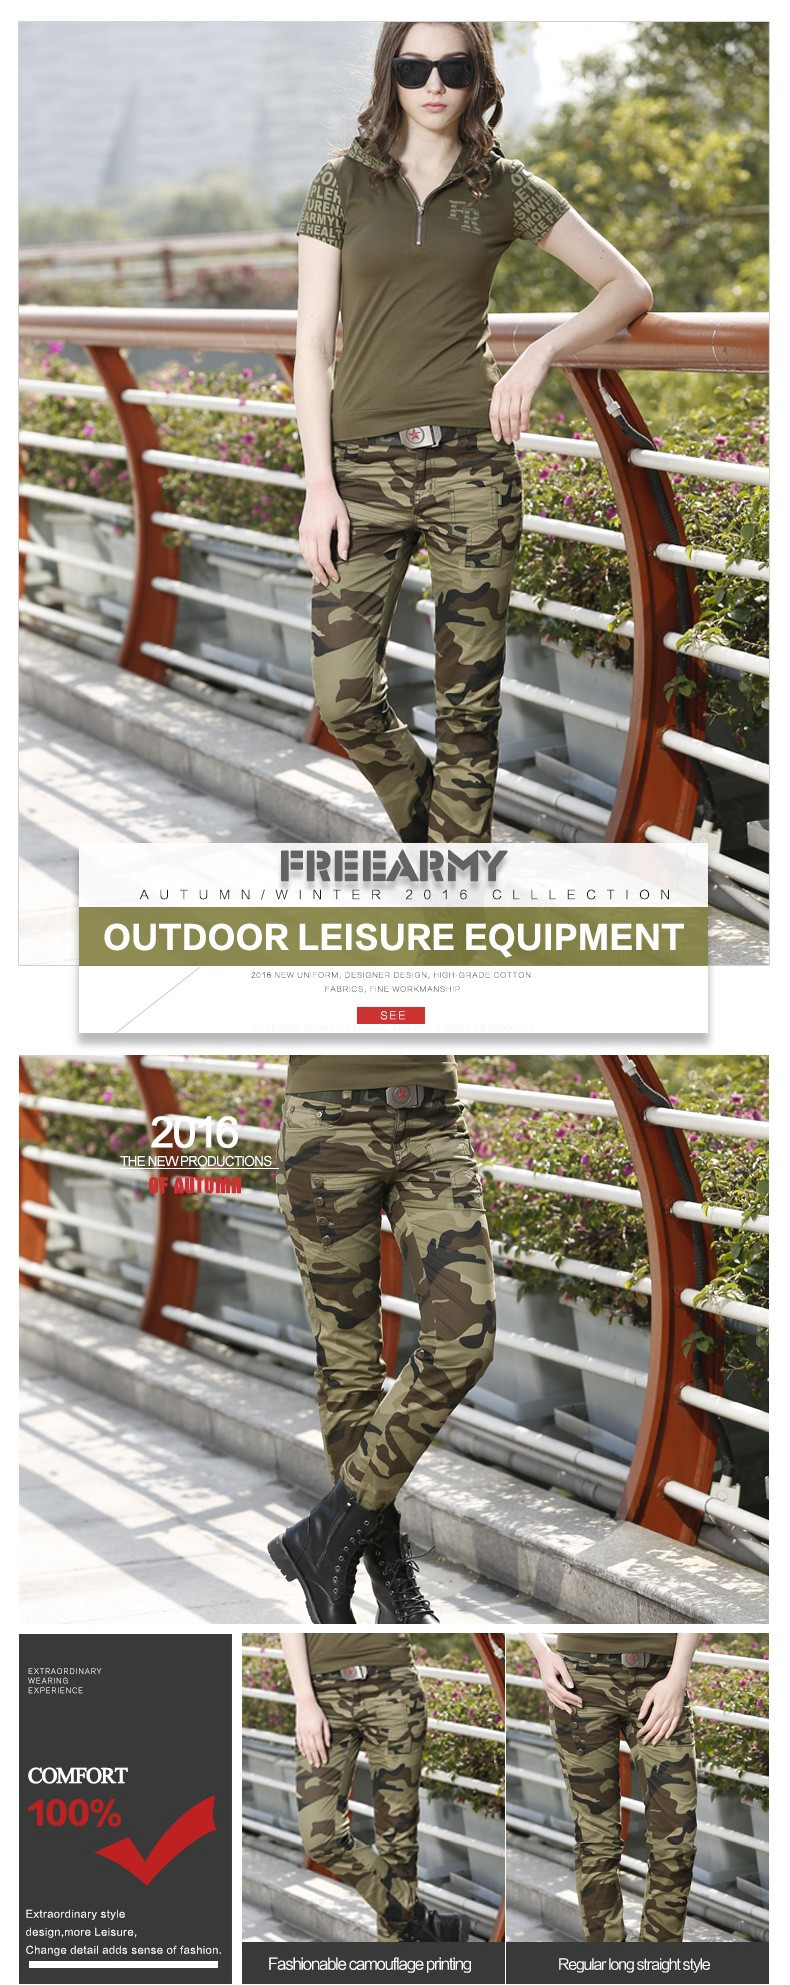 9a5c9081a442 http   armytshirt.xyz fashion-womens-camouflage-pants-womens-army-cargo- pencil-pant-slim-cotton-waist-sports-skinny-trousers-for-women -gk-969-us-25-52